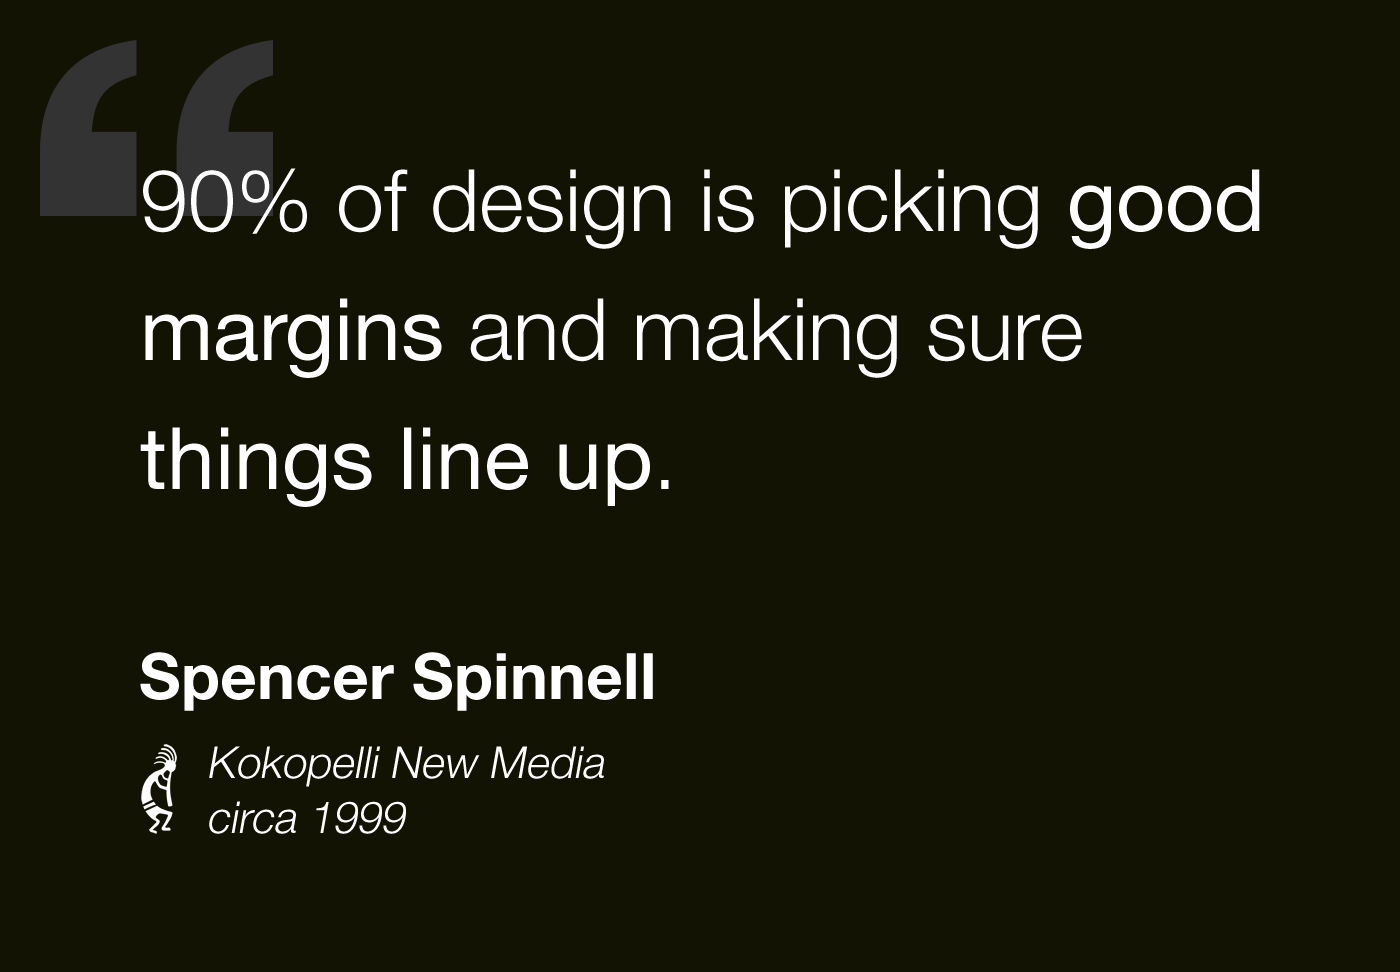 90% of design is picking good margins and making sure things line up.